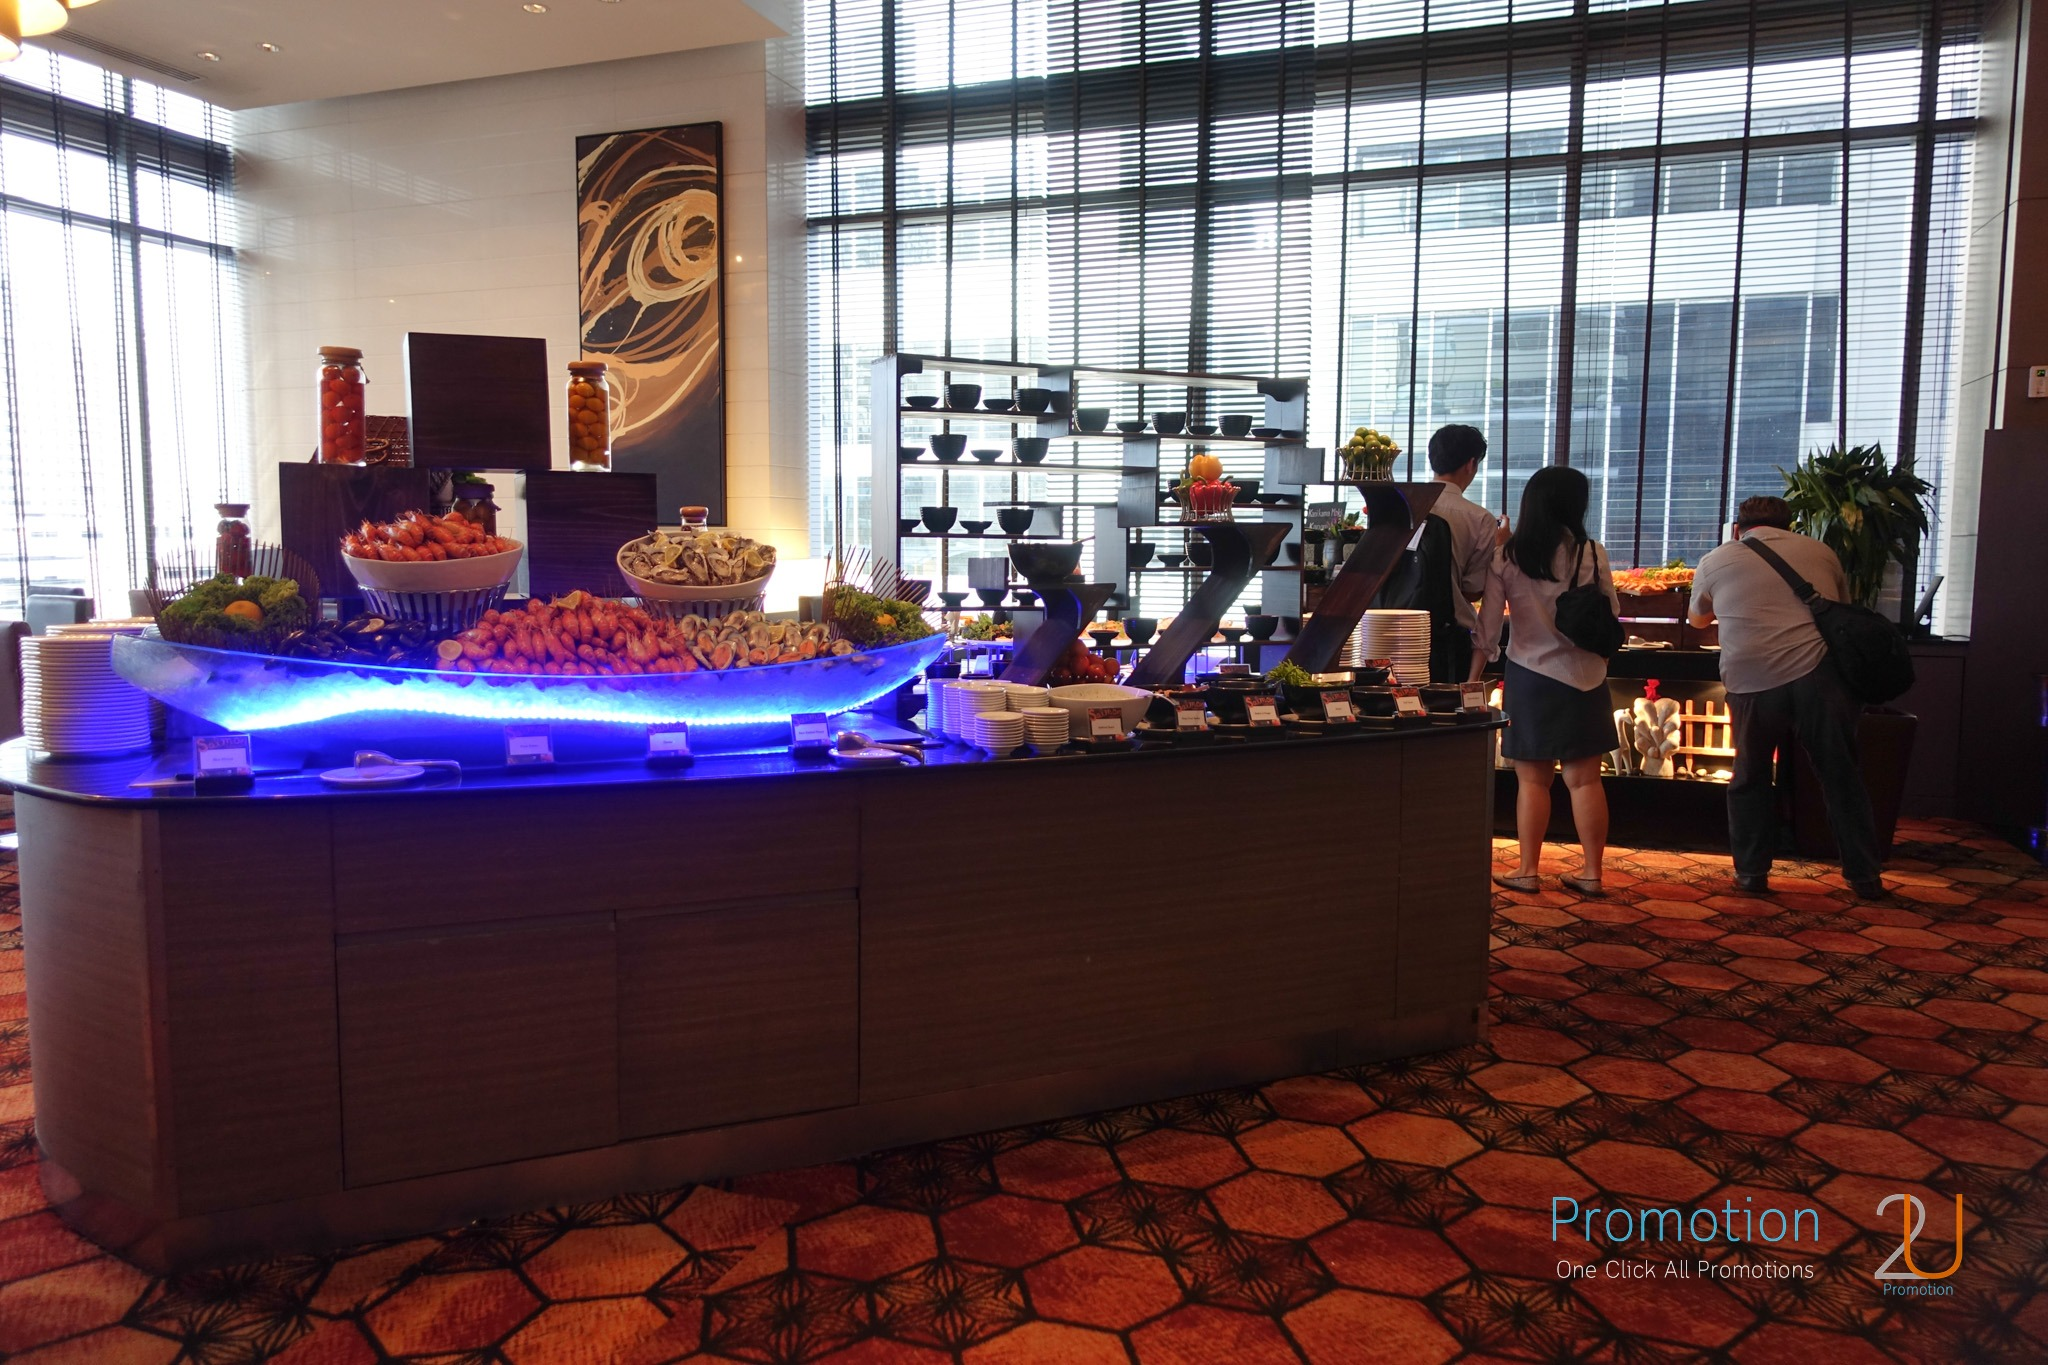 23Promotiion-Buffet-Come-2-pay-1-at-The--Squaer-Novotel-Pleonjit-Bangkok